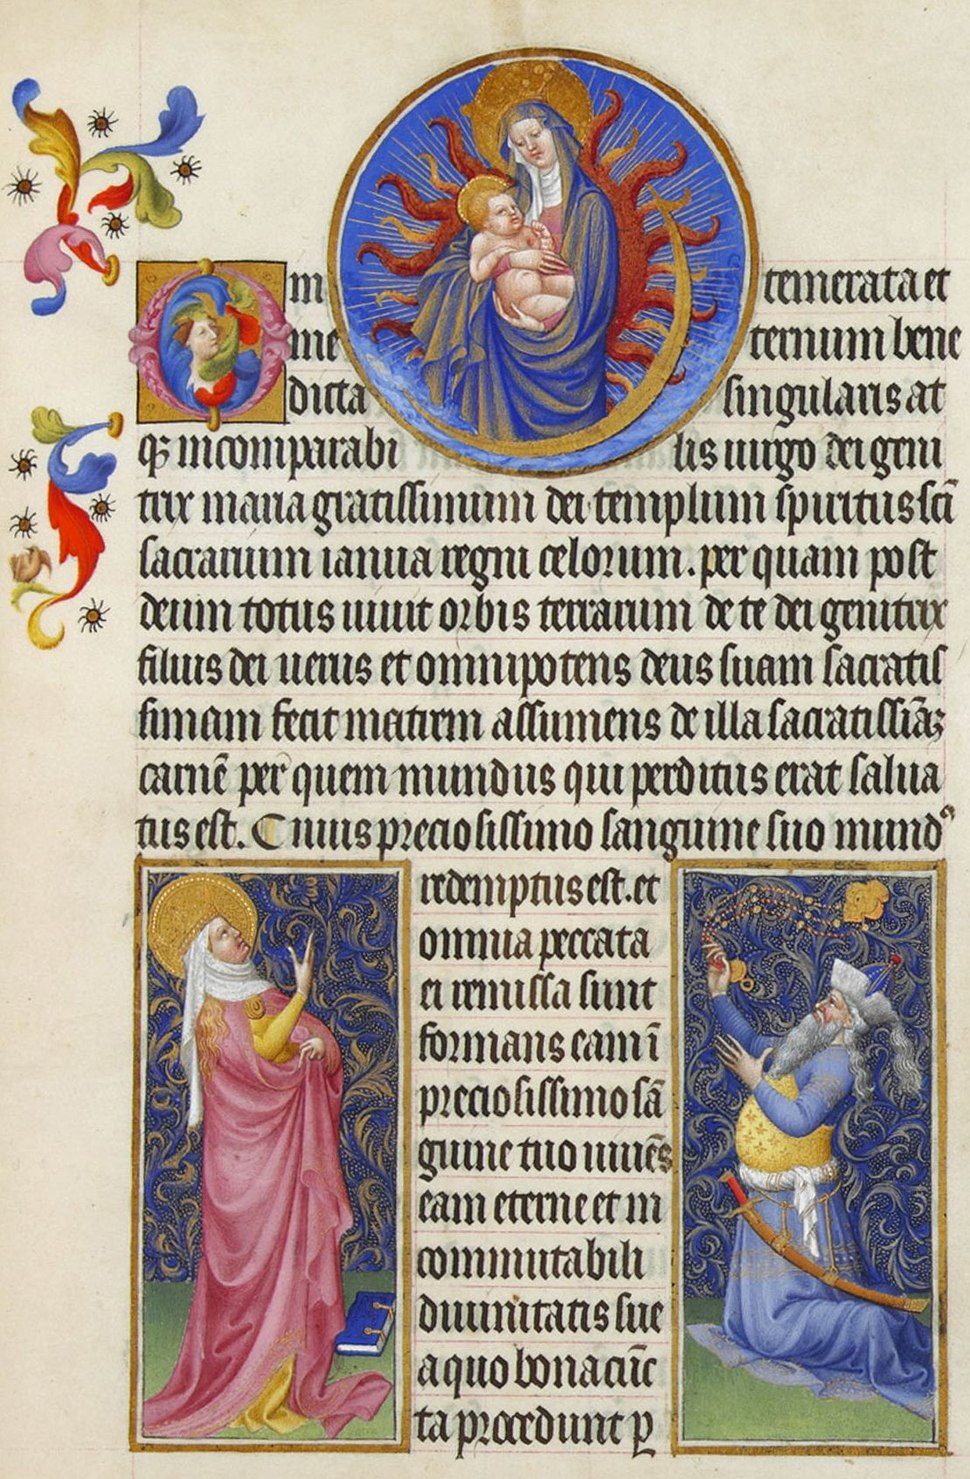 Folio 22r - The Virgin, the Sibyl and the Emperor Augustus